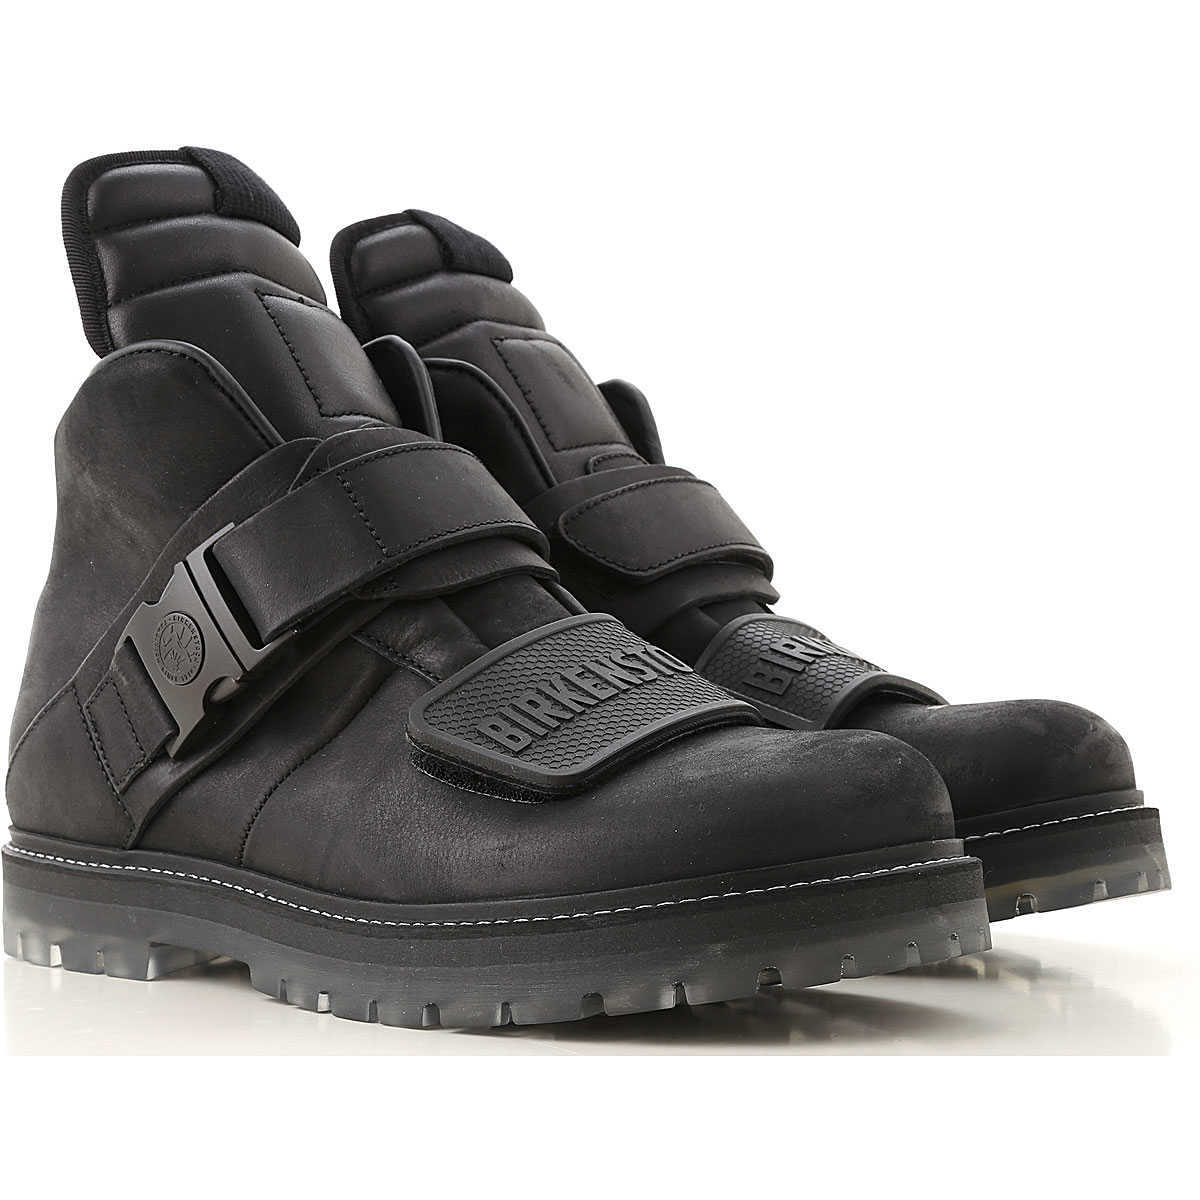 Rick Owens Boots for Men Booties On Sale - GOOFASH